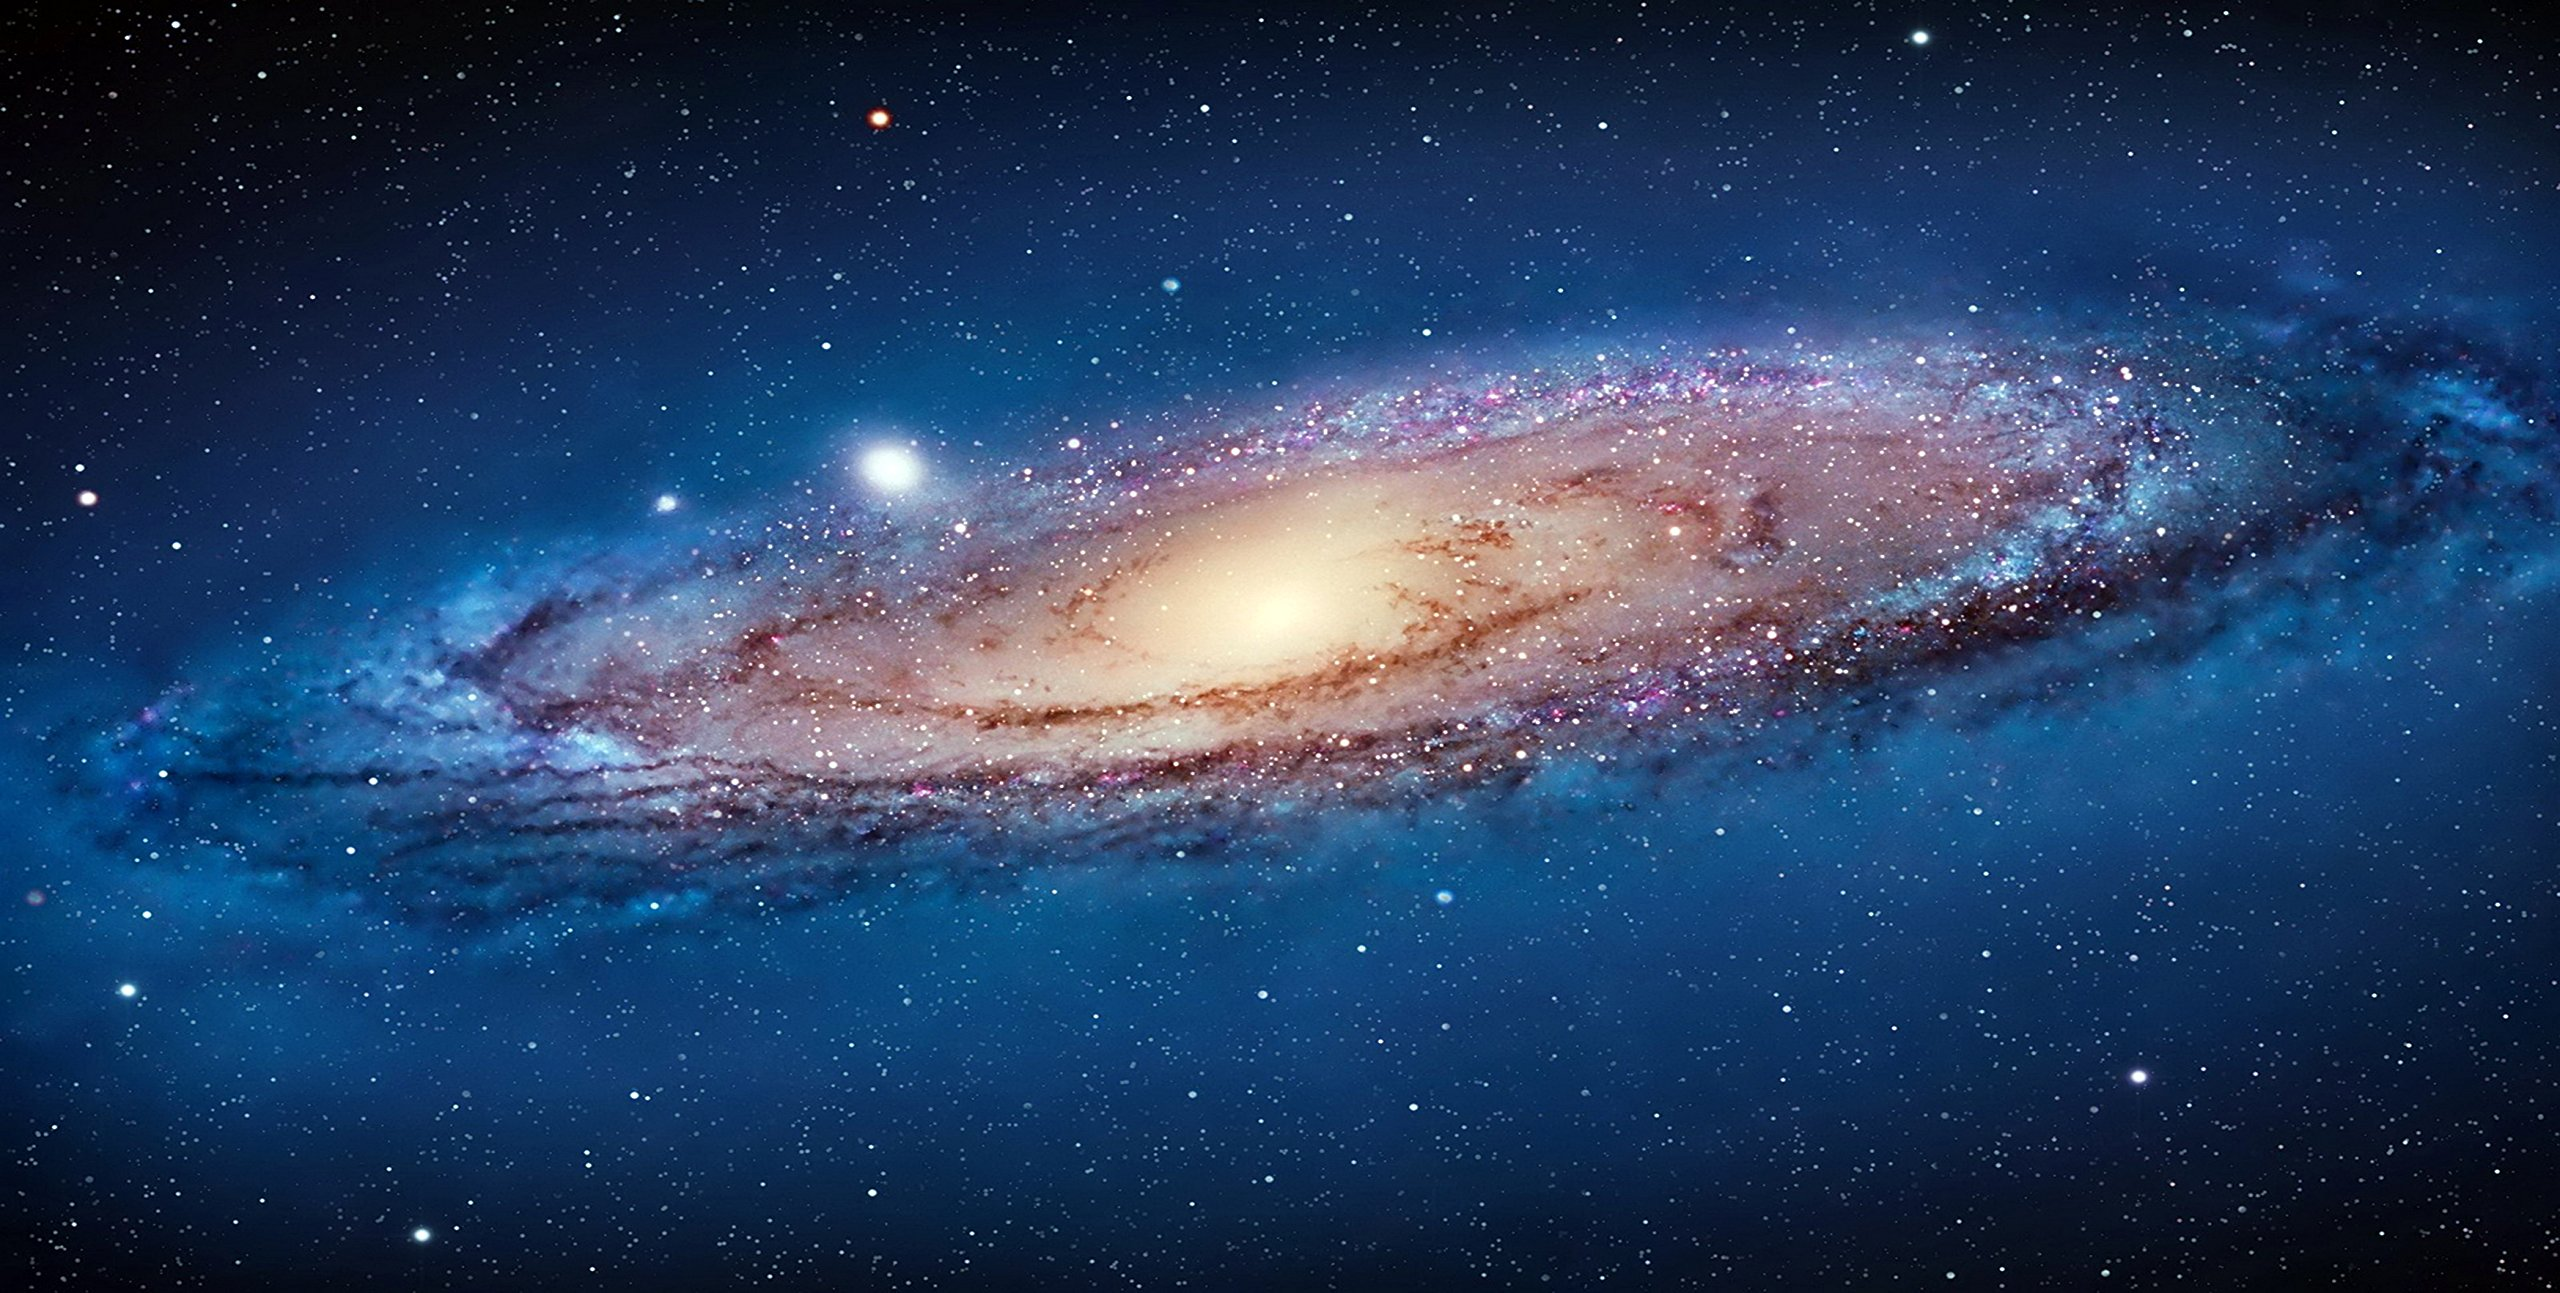 NASA Photo Outer Space Art Galaxy Wall Art Decor Hubble Telescope Photography by Fengshui-paintings.com